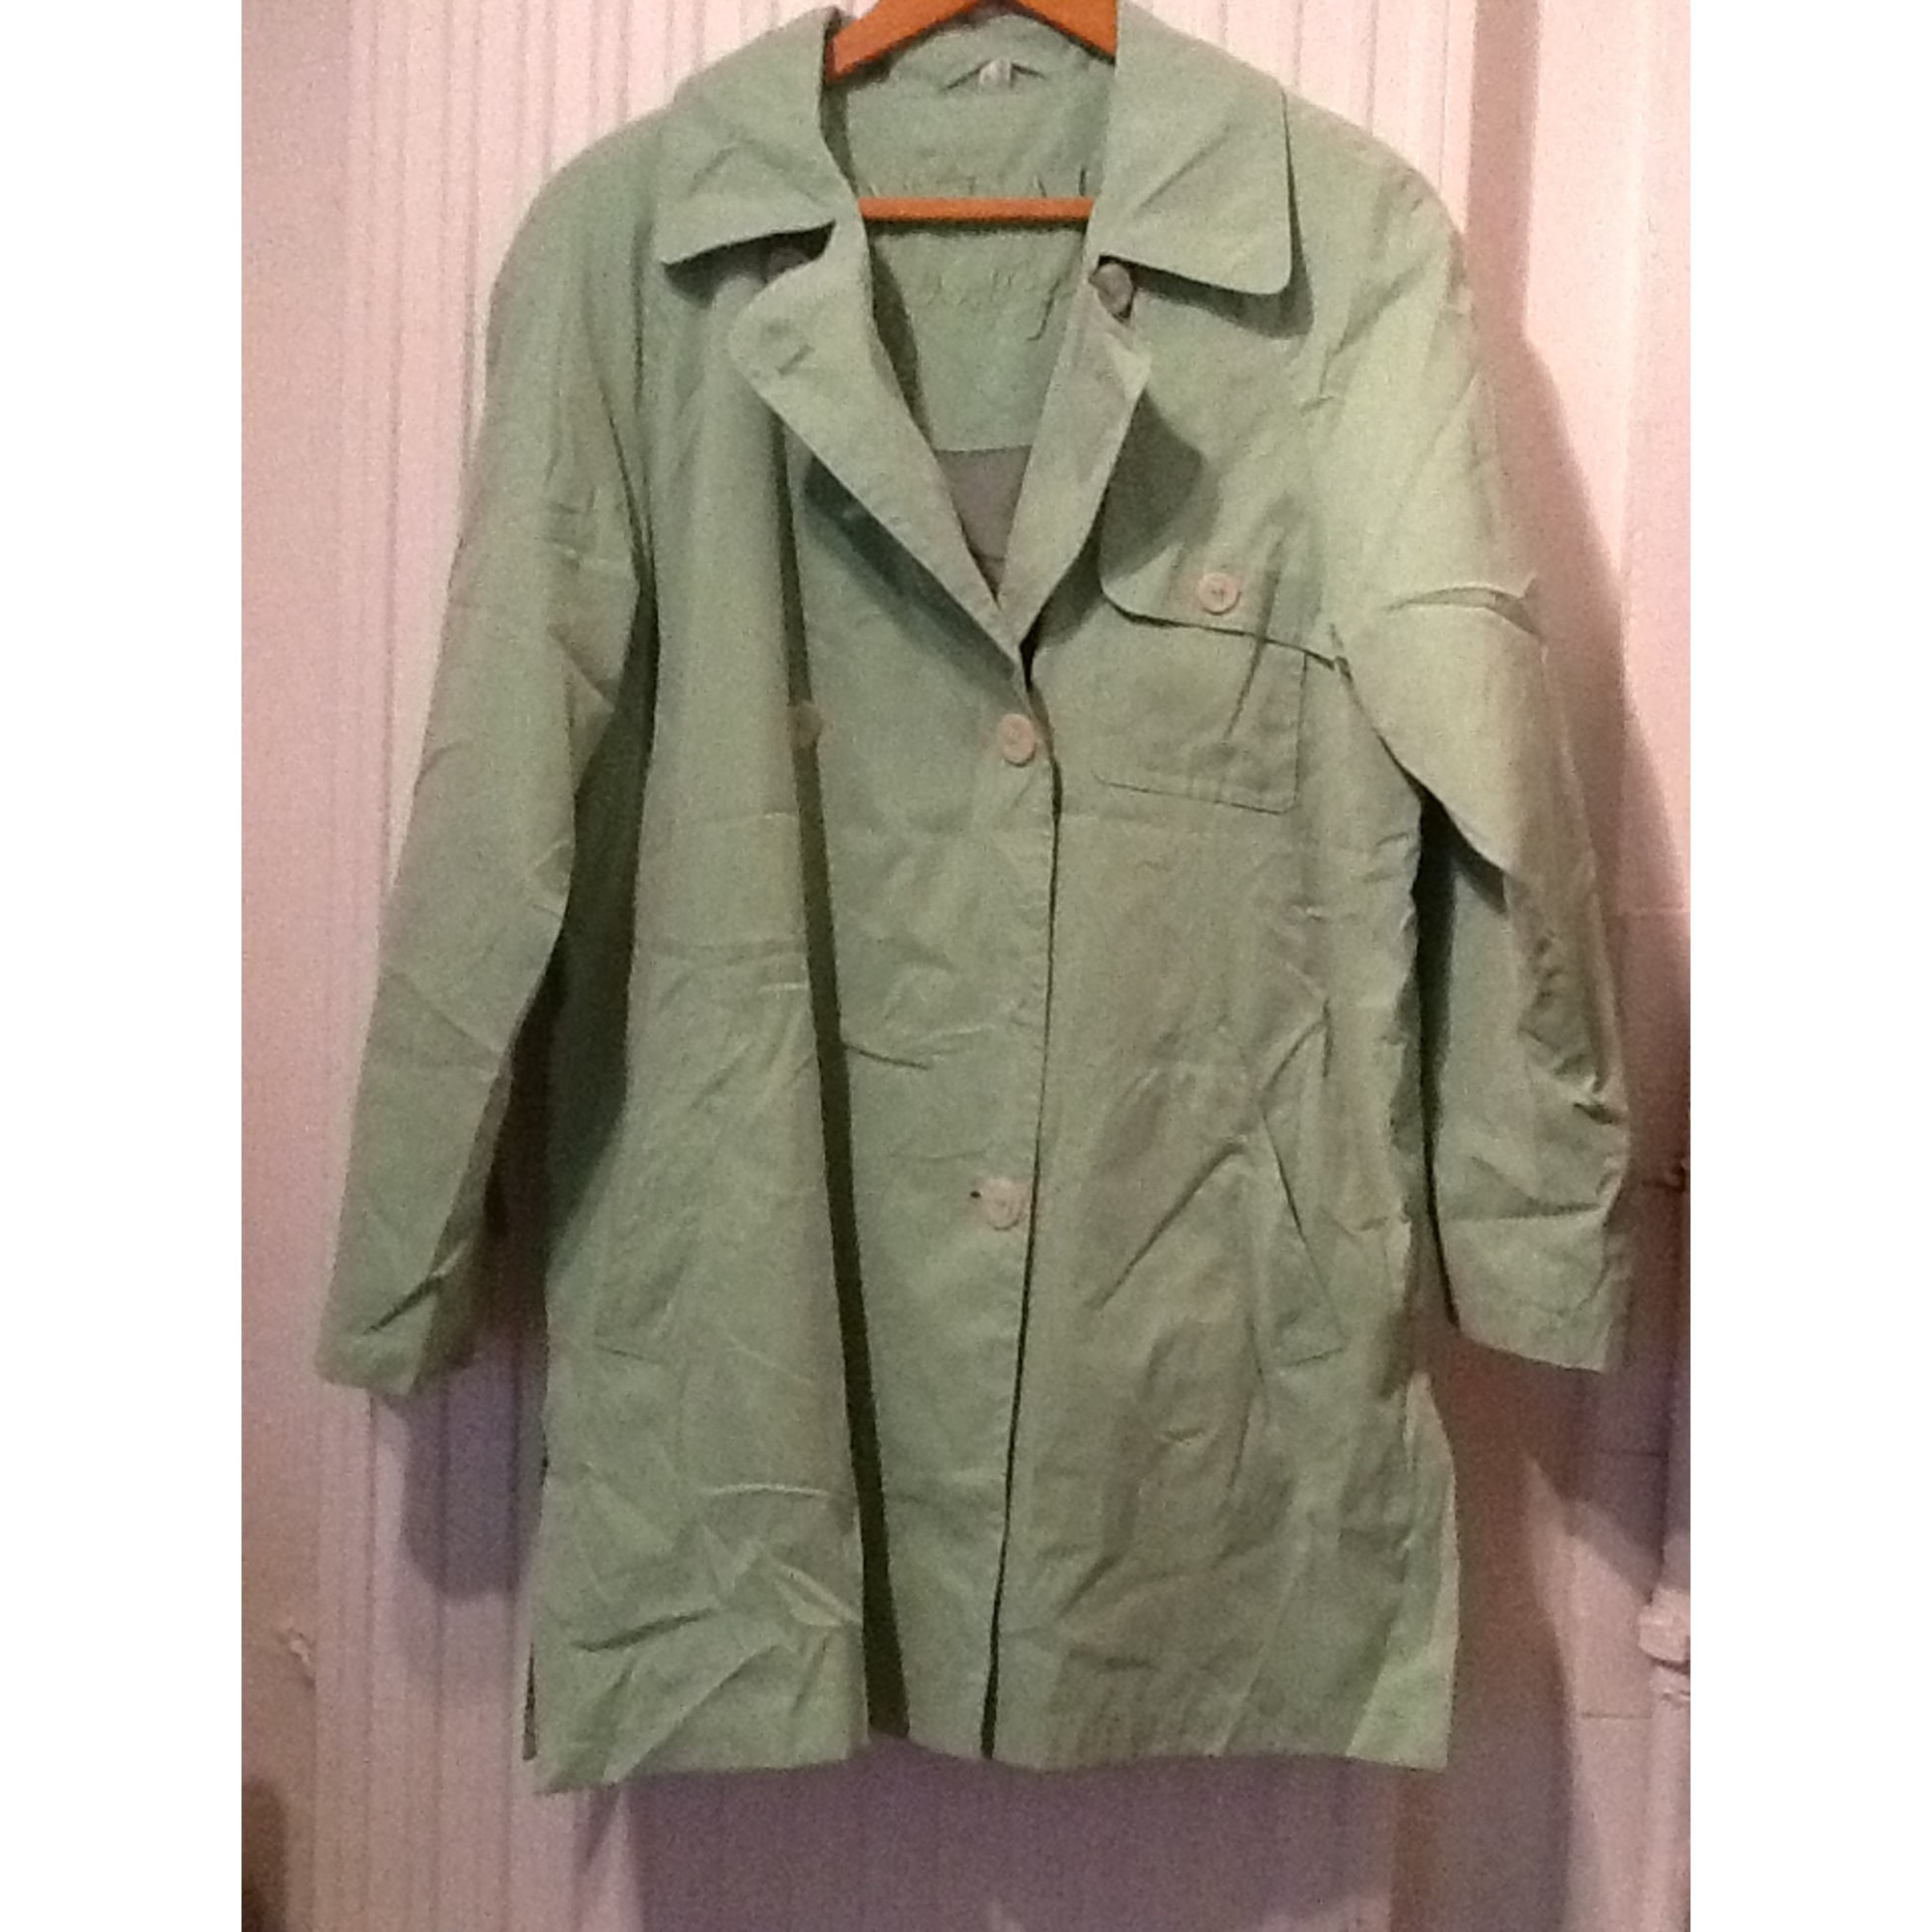 Imperméable, trench WEAR DAILY Vert